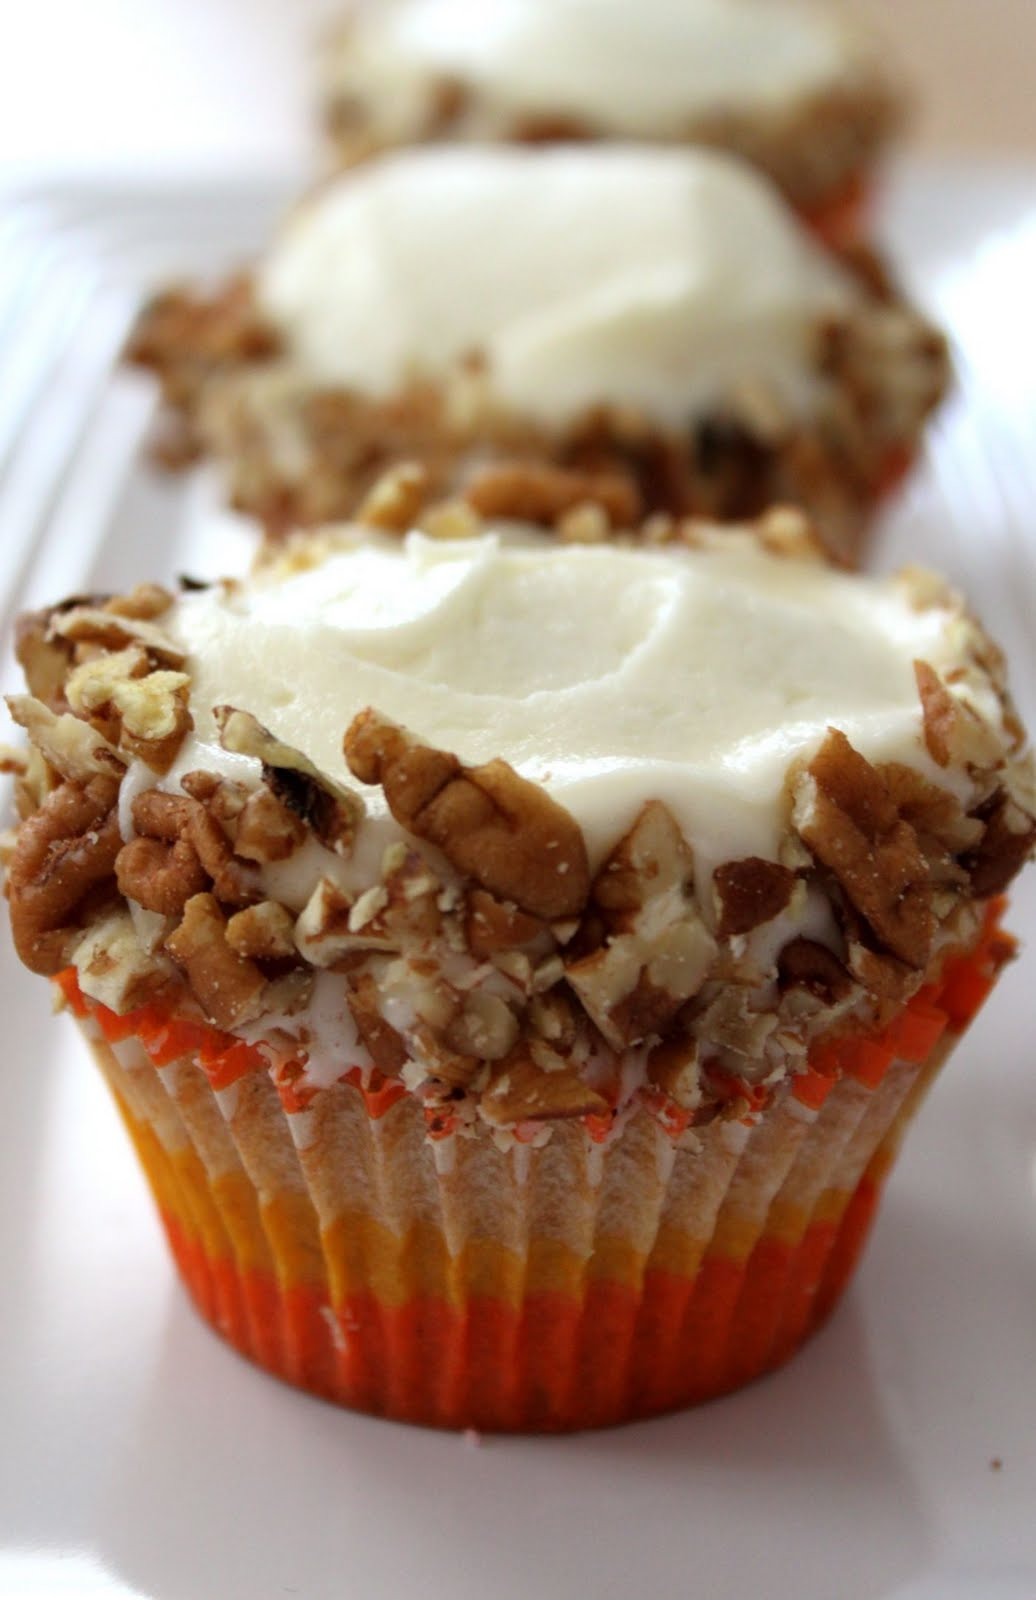 Baked Perfection: Carrot Cupcakes with Cream Cheese Frosting